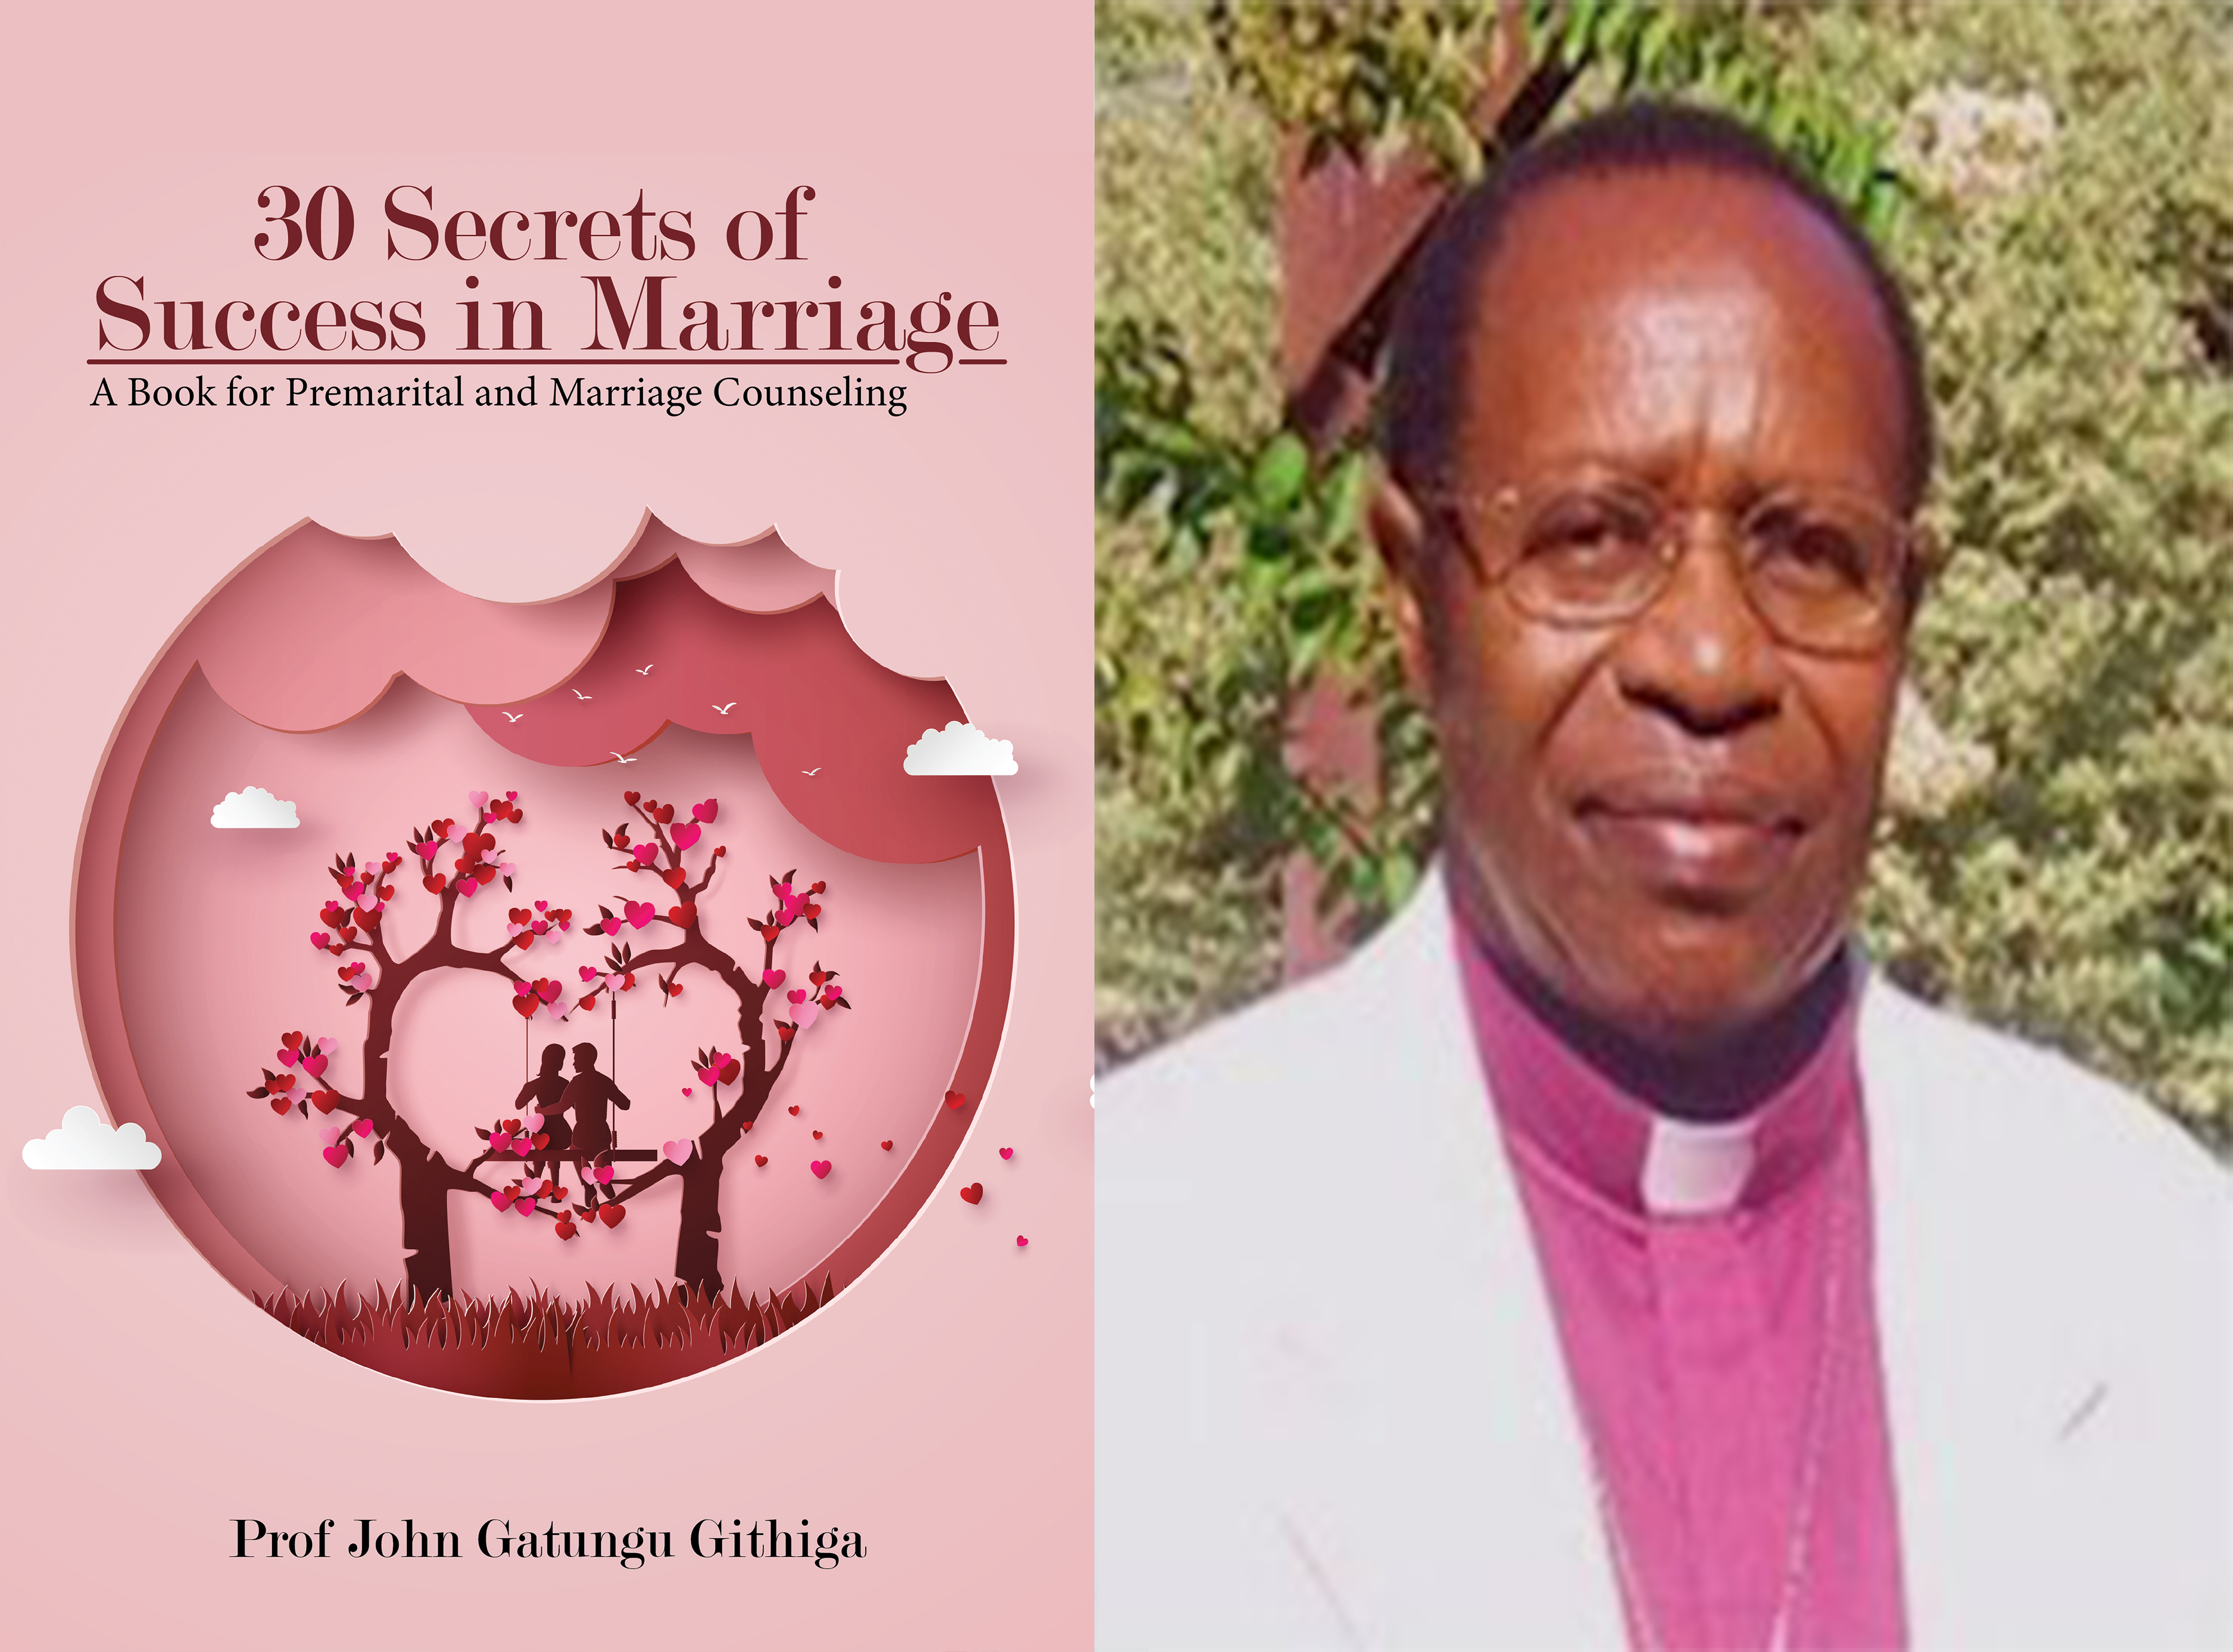 Prof. John Githiga's Latest Book Shares Keys to Living a Happy Married Life